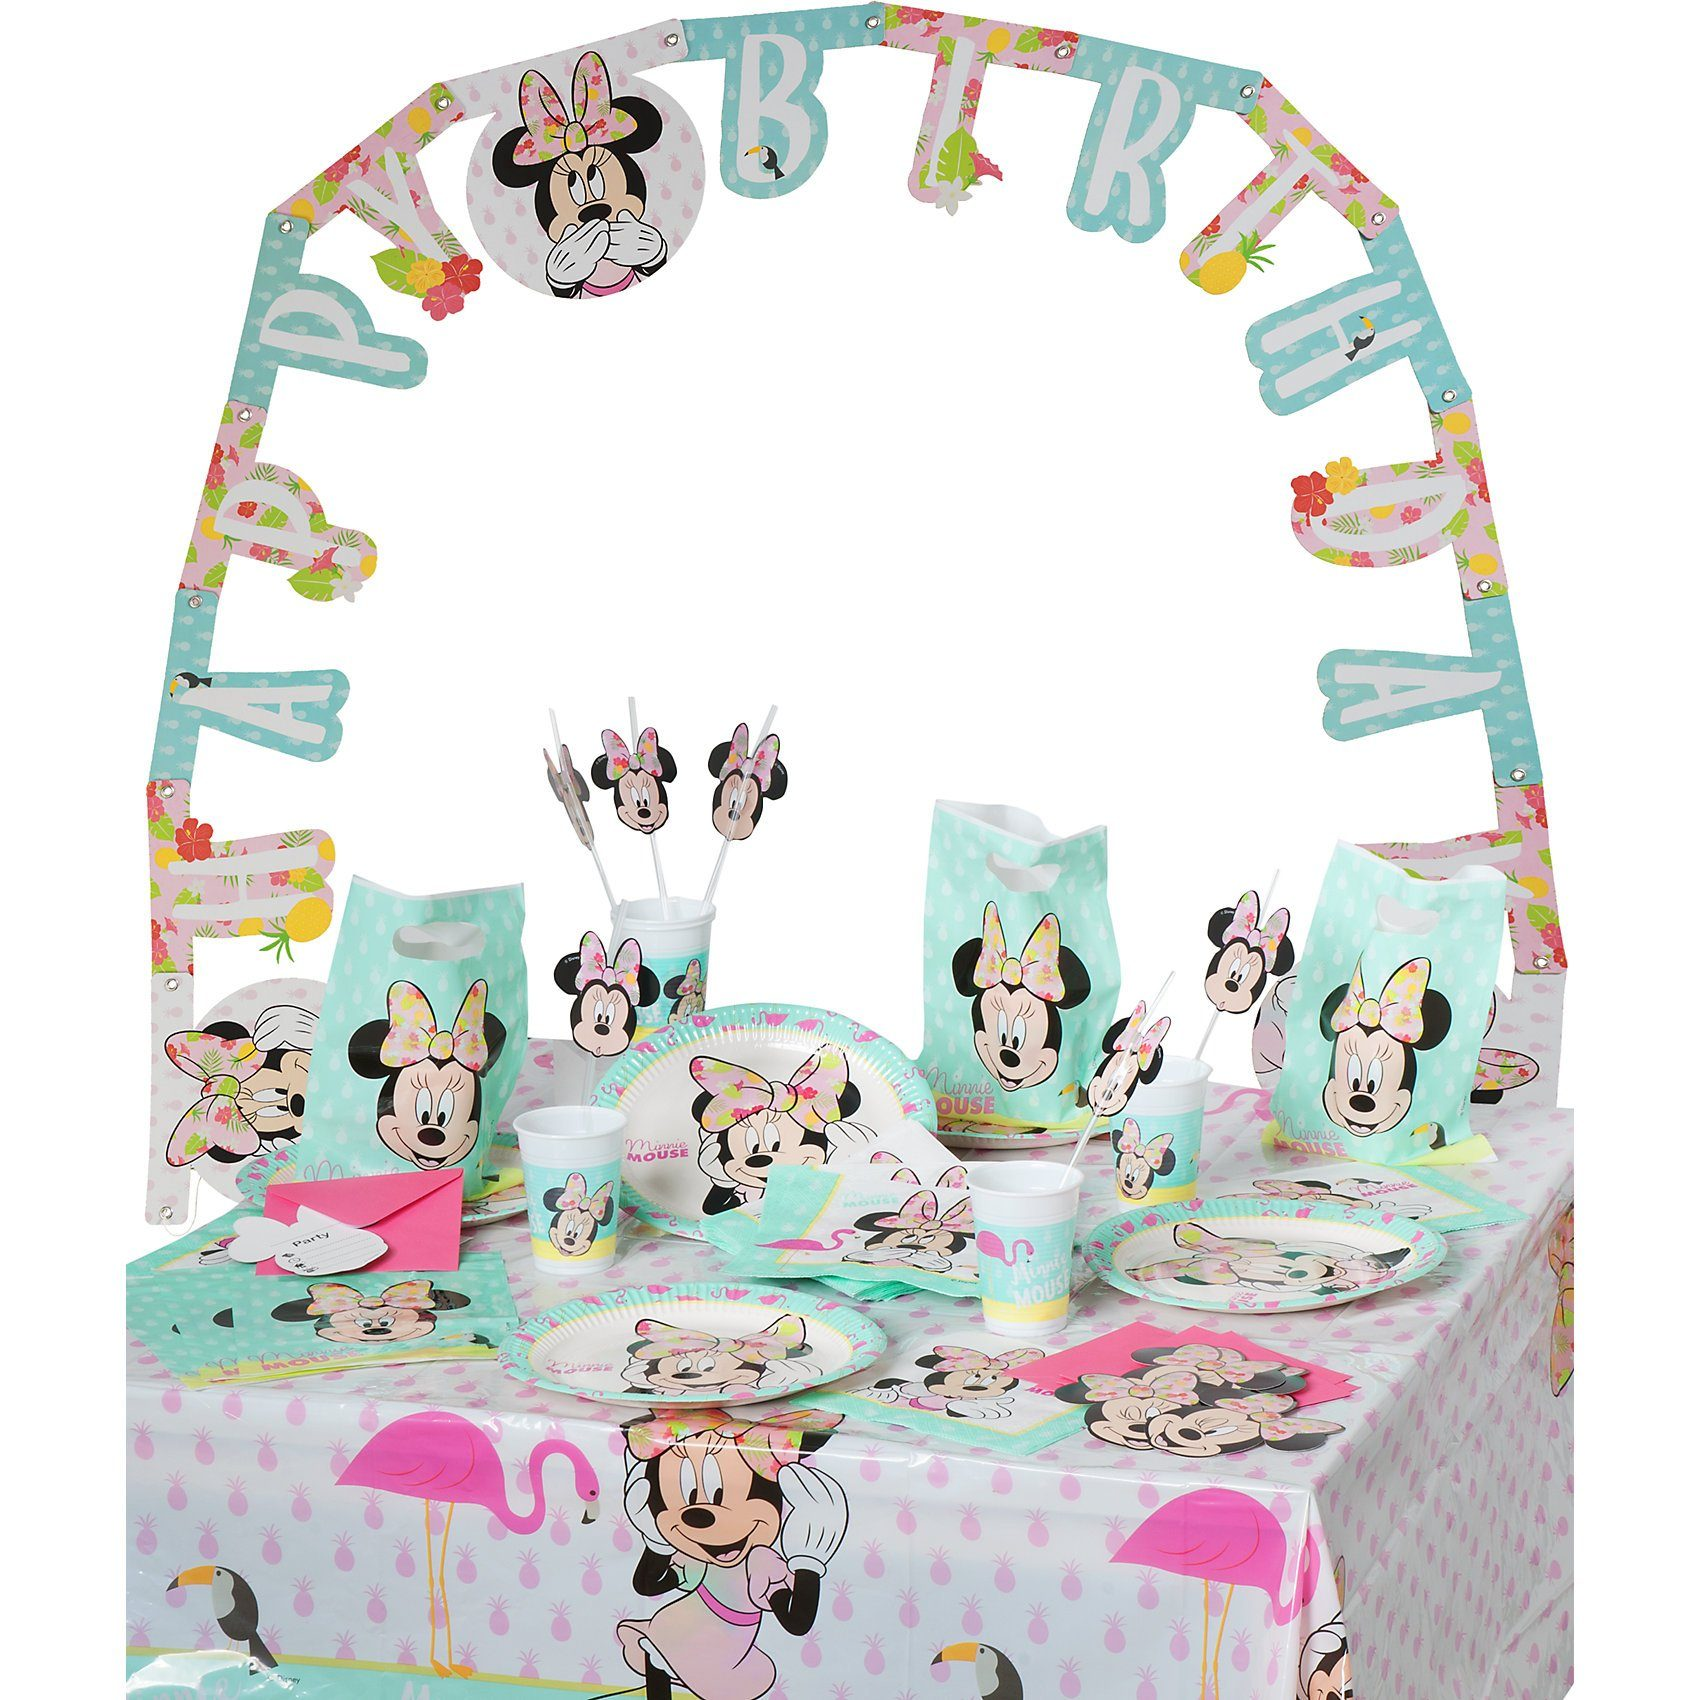 Procos Partyset Minnie Mouse Tropical, 56-tlg.